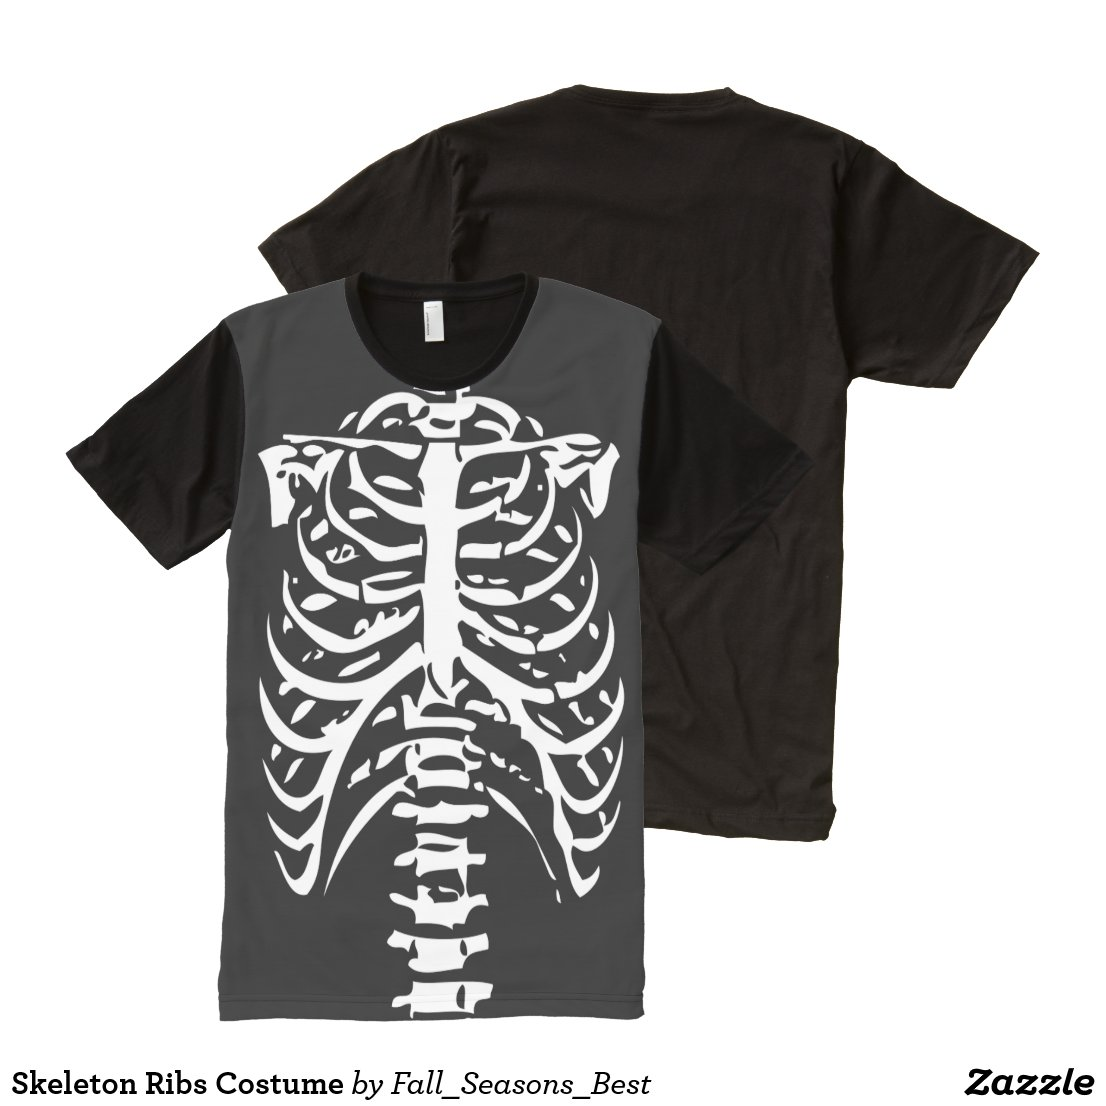 Skeleton Ribs Costume All-Over-Print Shirt